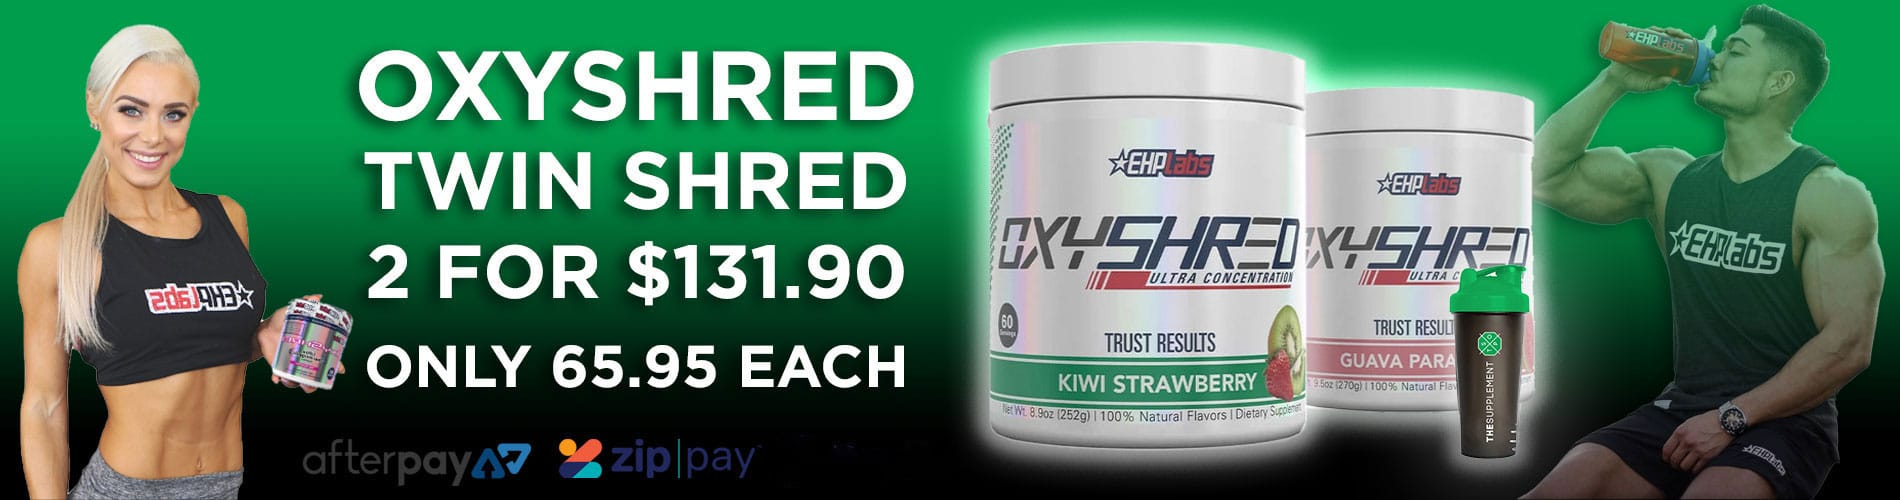 Oxyshred-Supplements